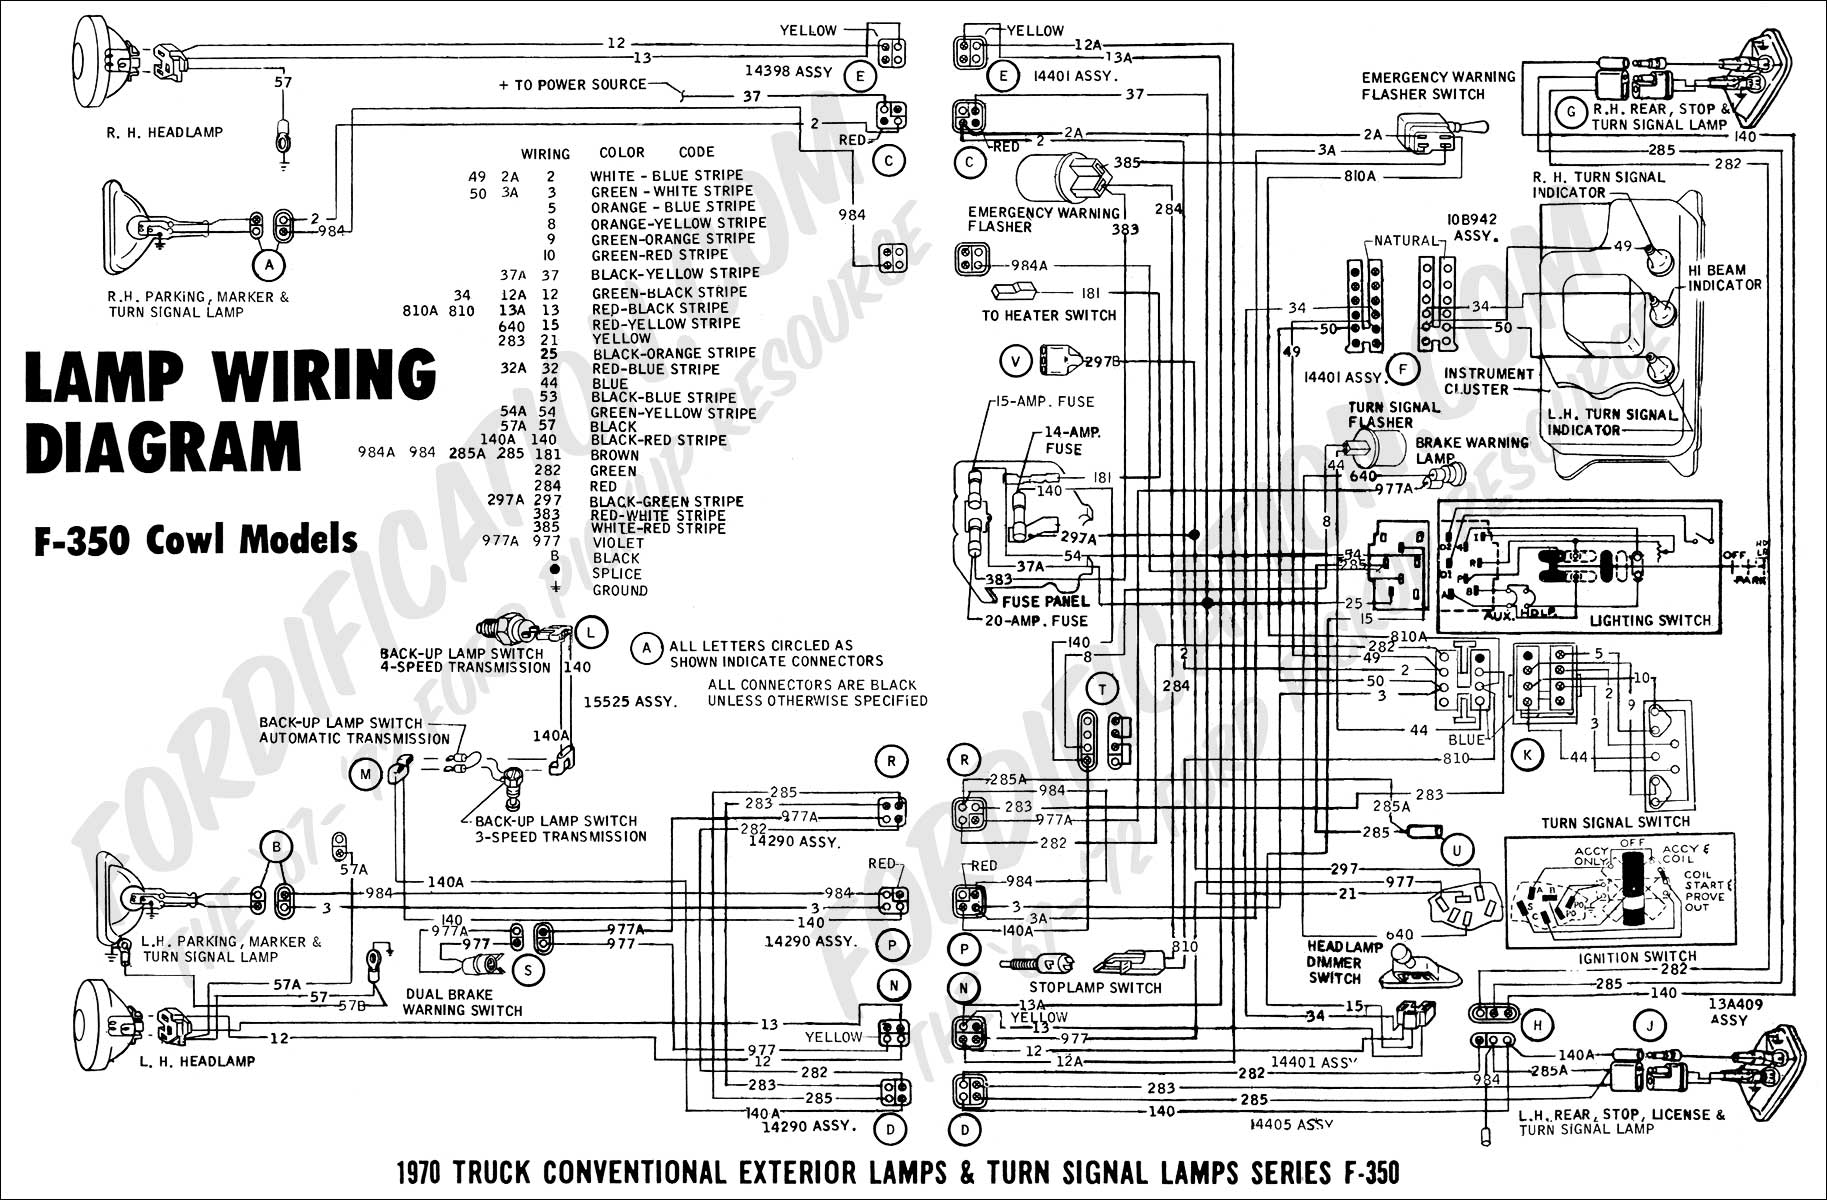 2001 F250 Wiring Diagram Manual Guide F550 Schematic Schematics Rh Ksefanzone Com 73